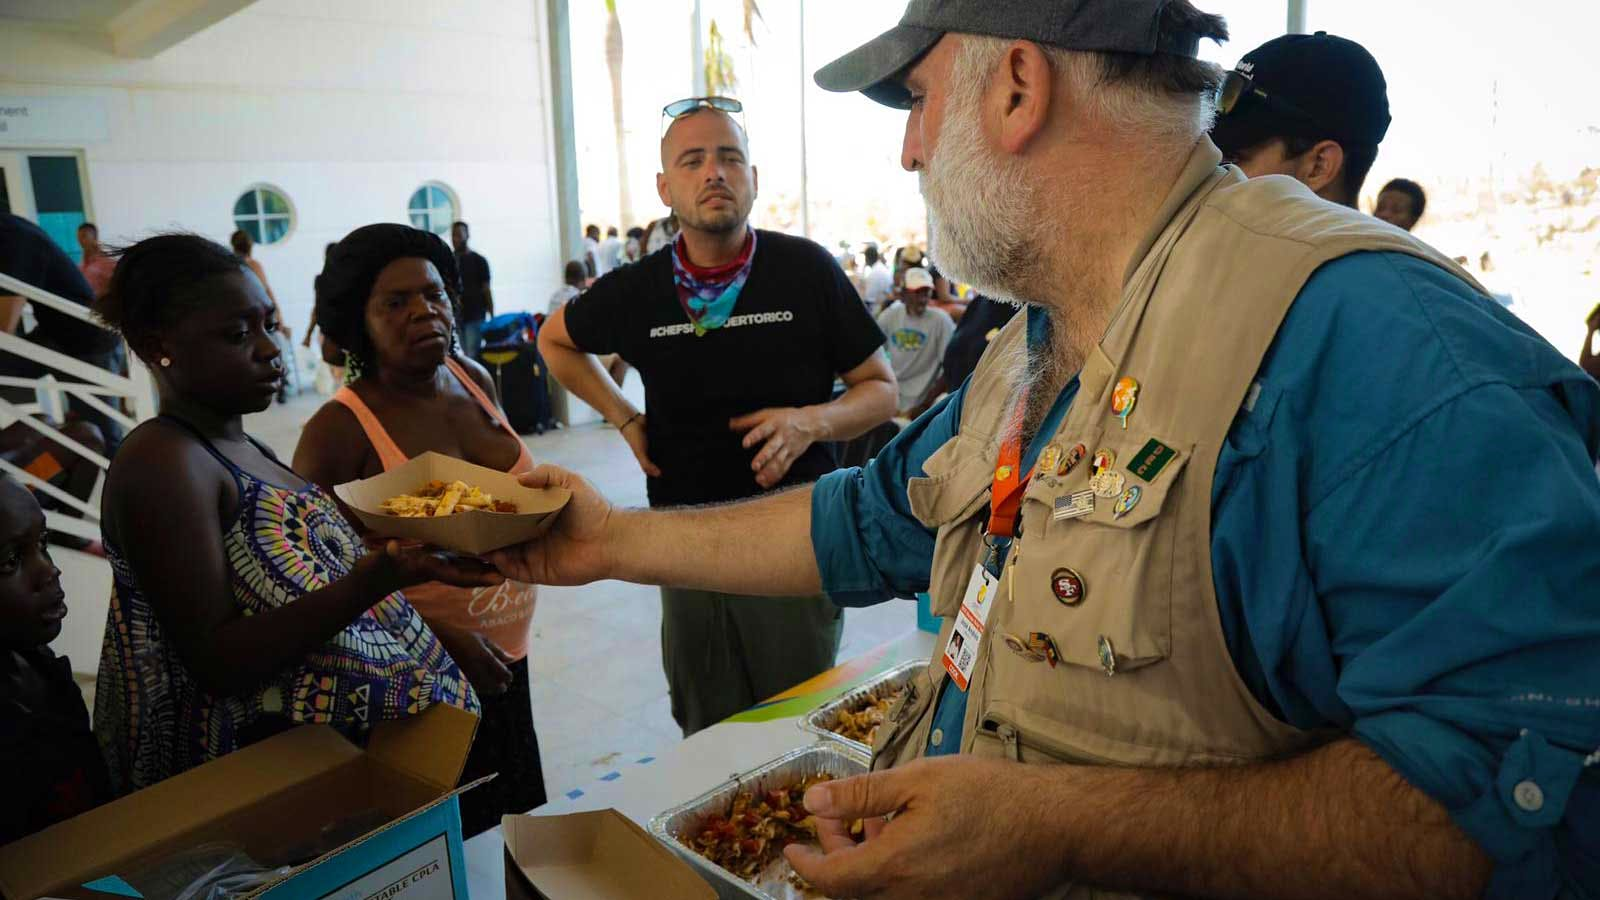 Chef José Andrés' Charity Makes a Difference with 1 Million Meals